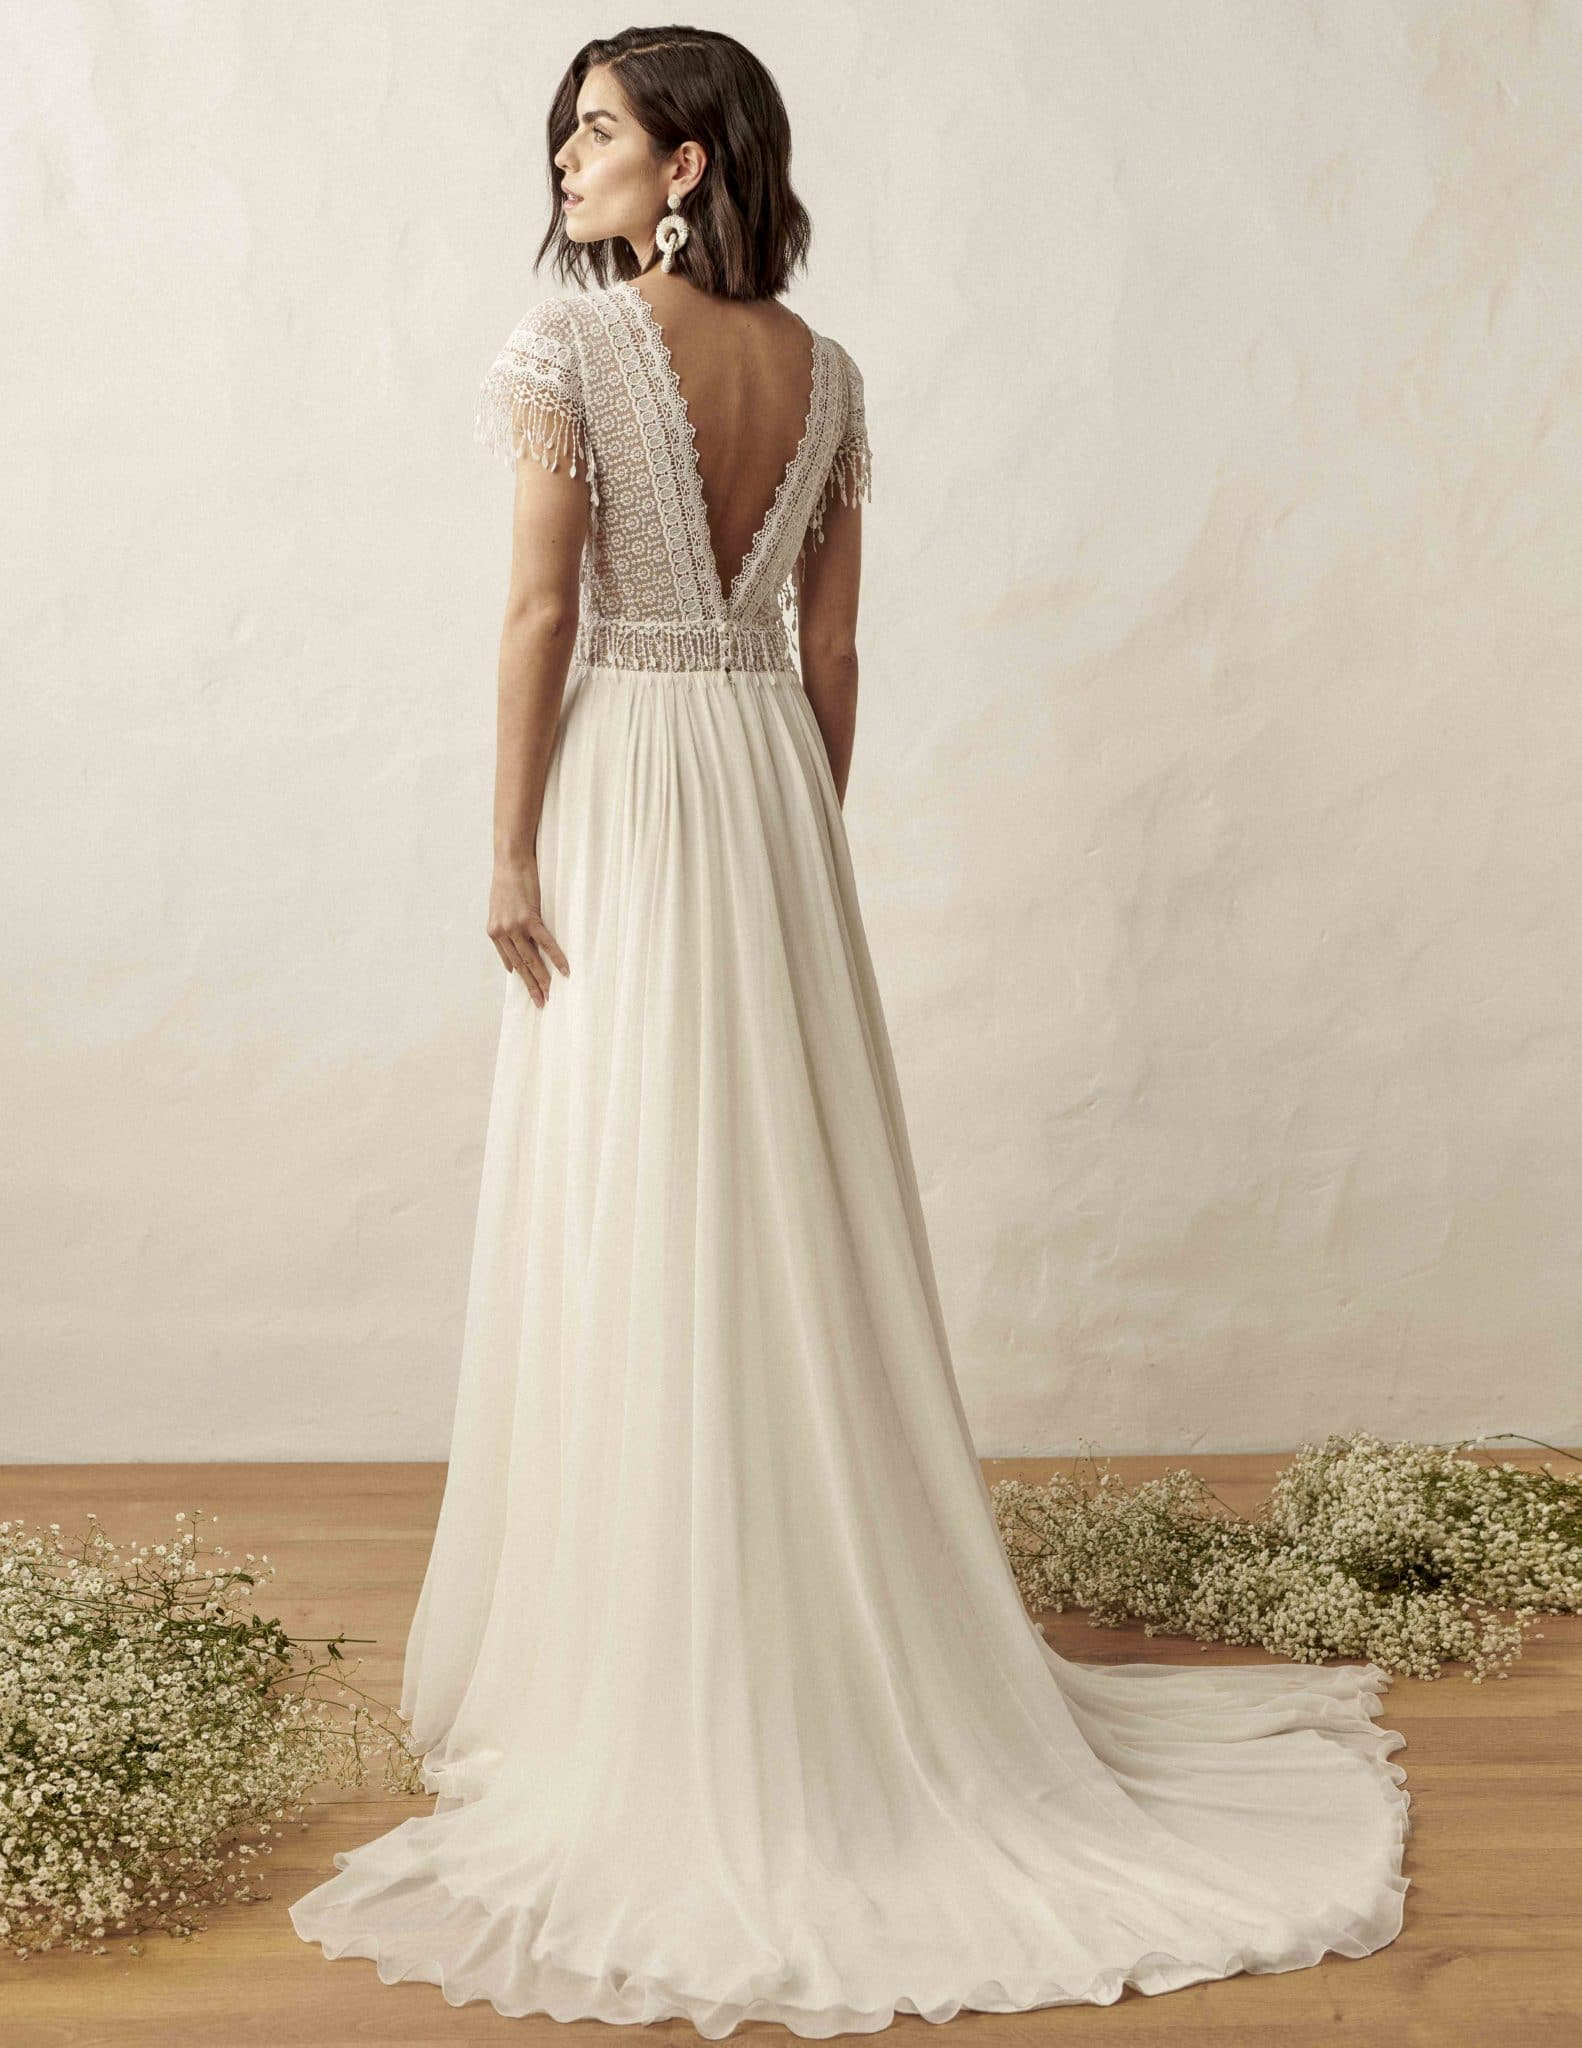 Craftsmanship For The Strong Confident Bride Marylise Bridal